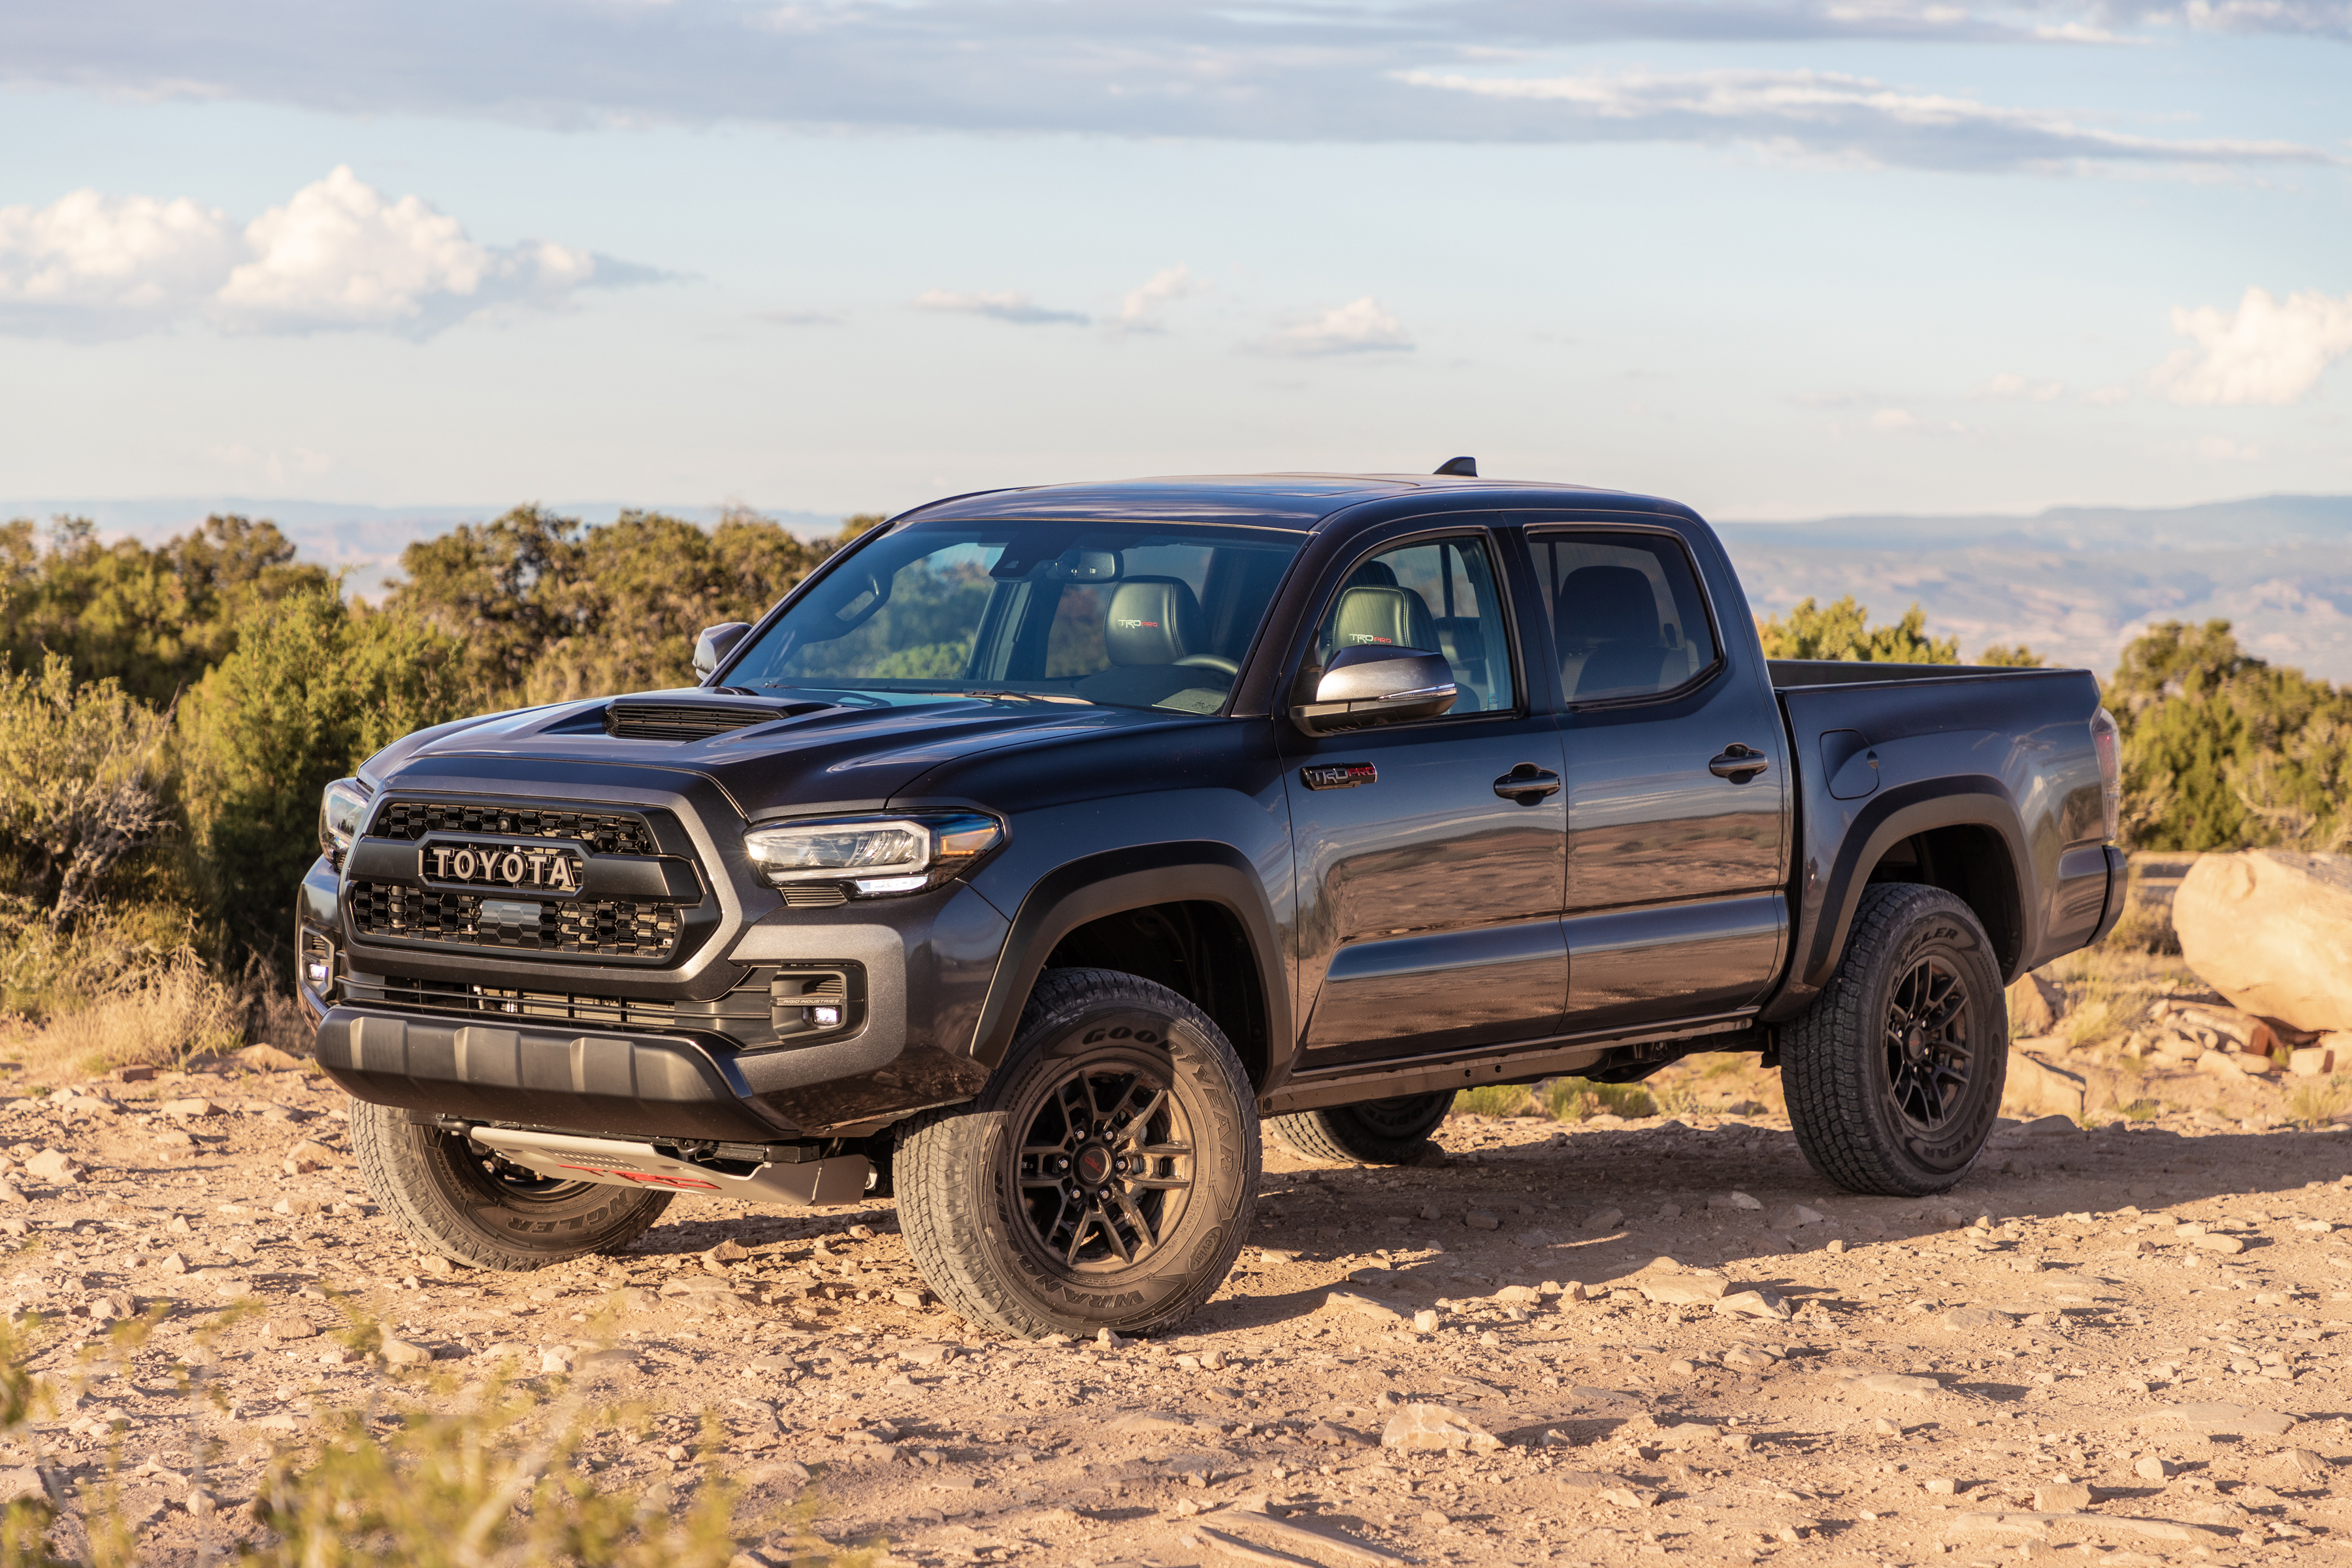 Toyota Tacoma Hd Wallpaper Background Image 3600x2400